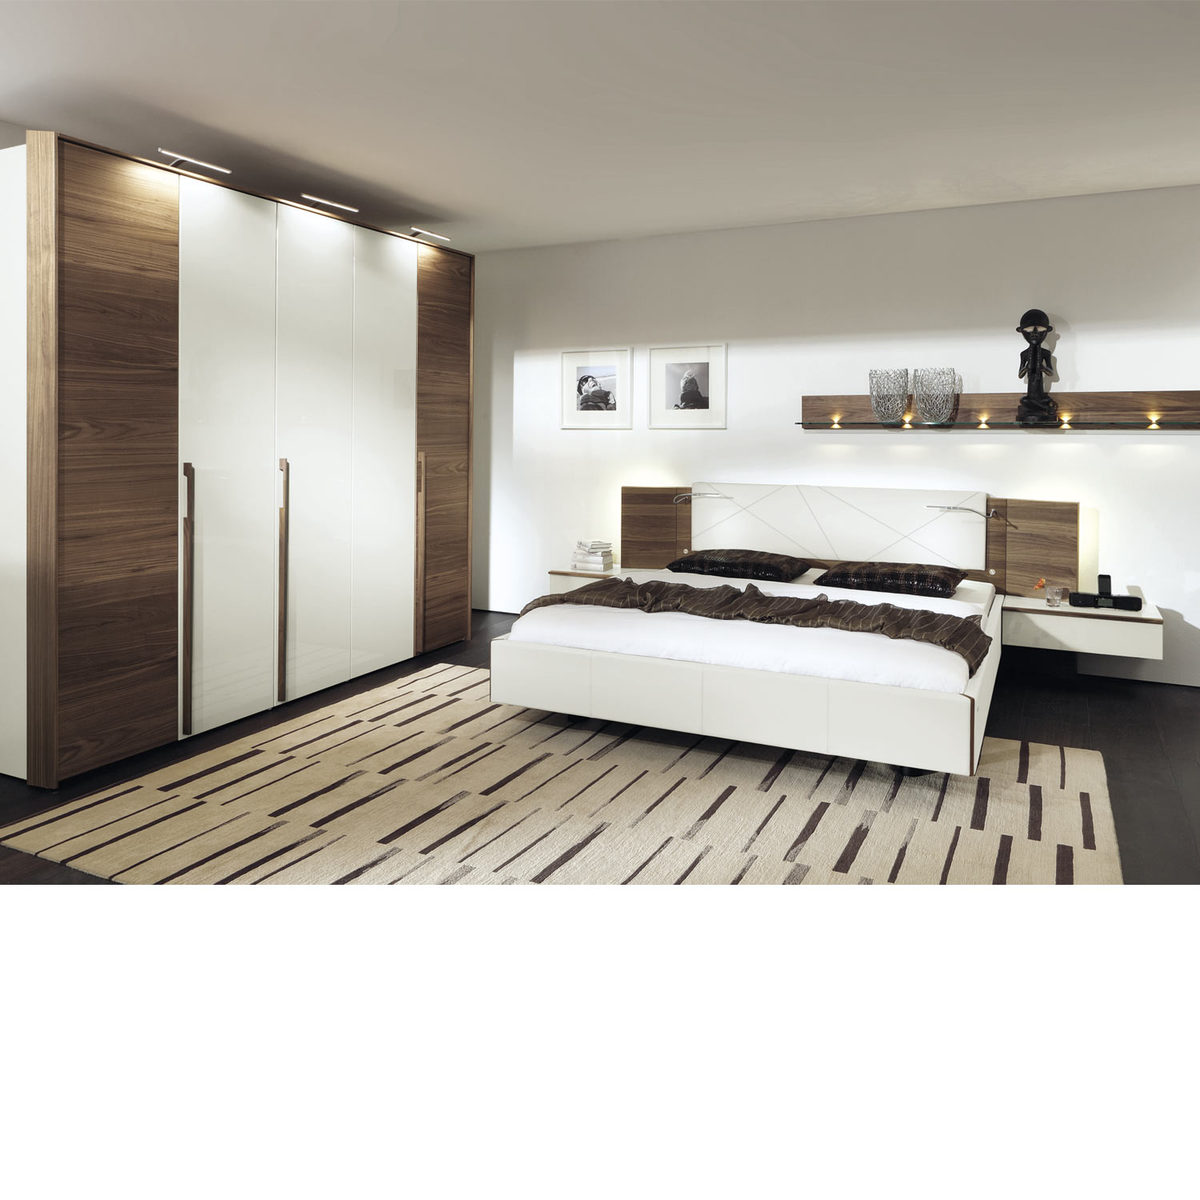 h lsta schlafzimmer cutaro kernnussbaum furniert von hardeck ansehen. Black Bedroom Furniture Sets. Home Design Ideas